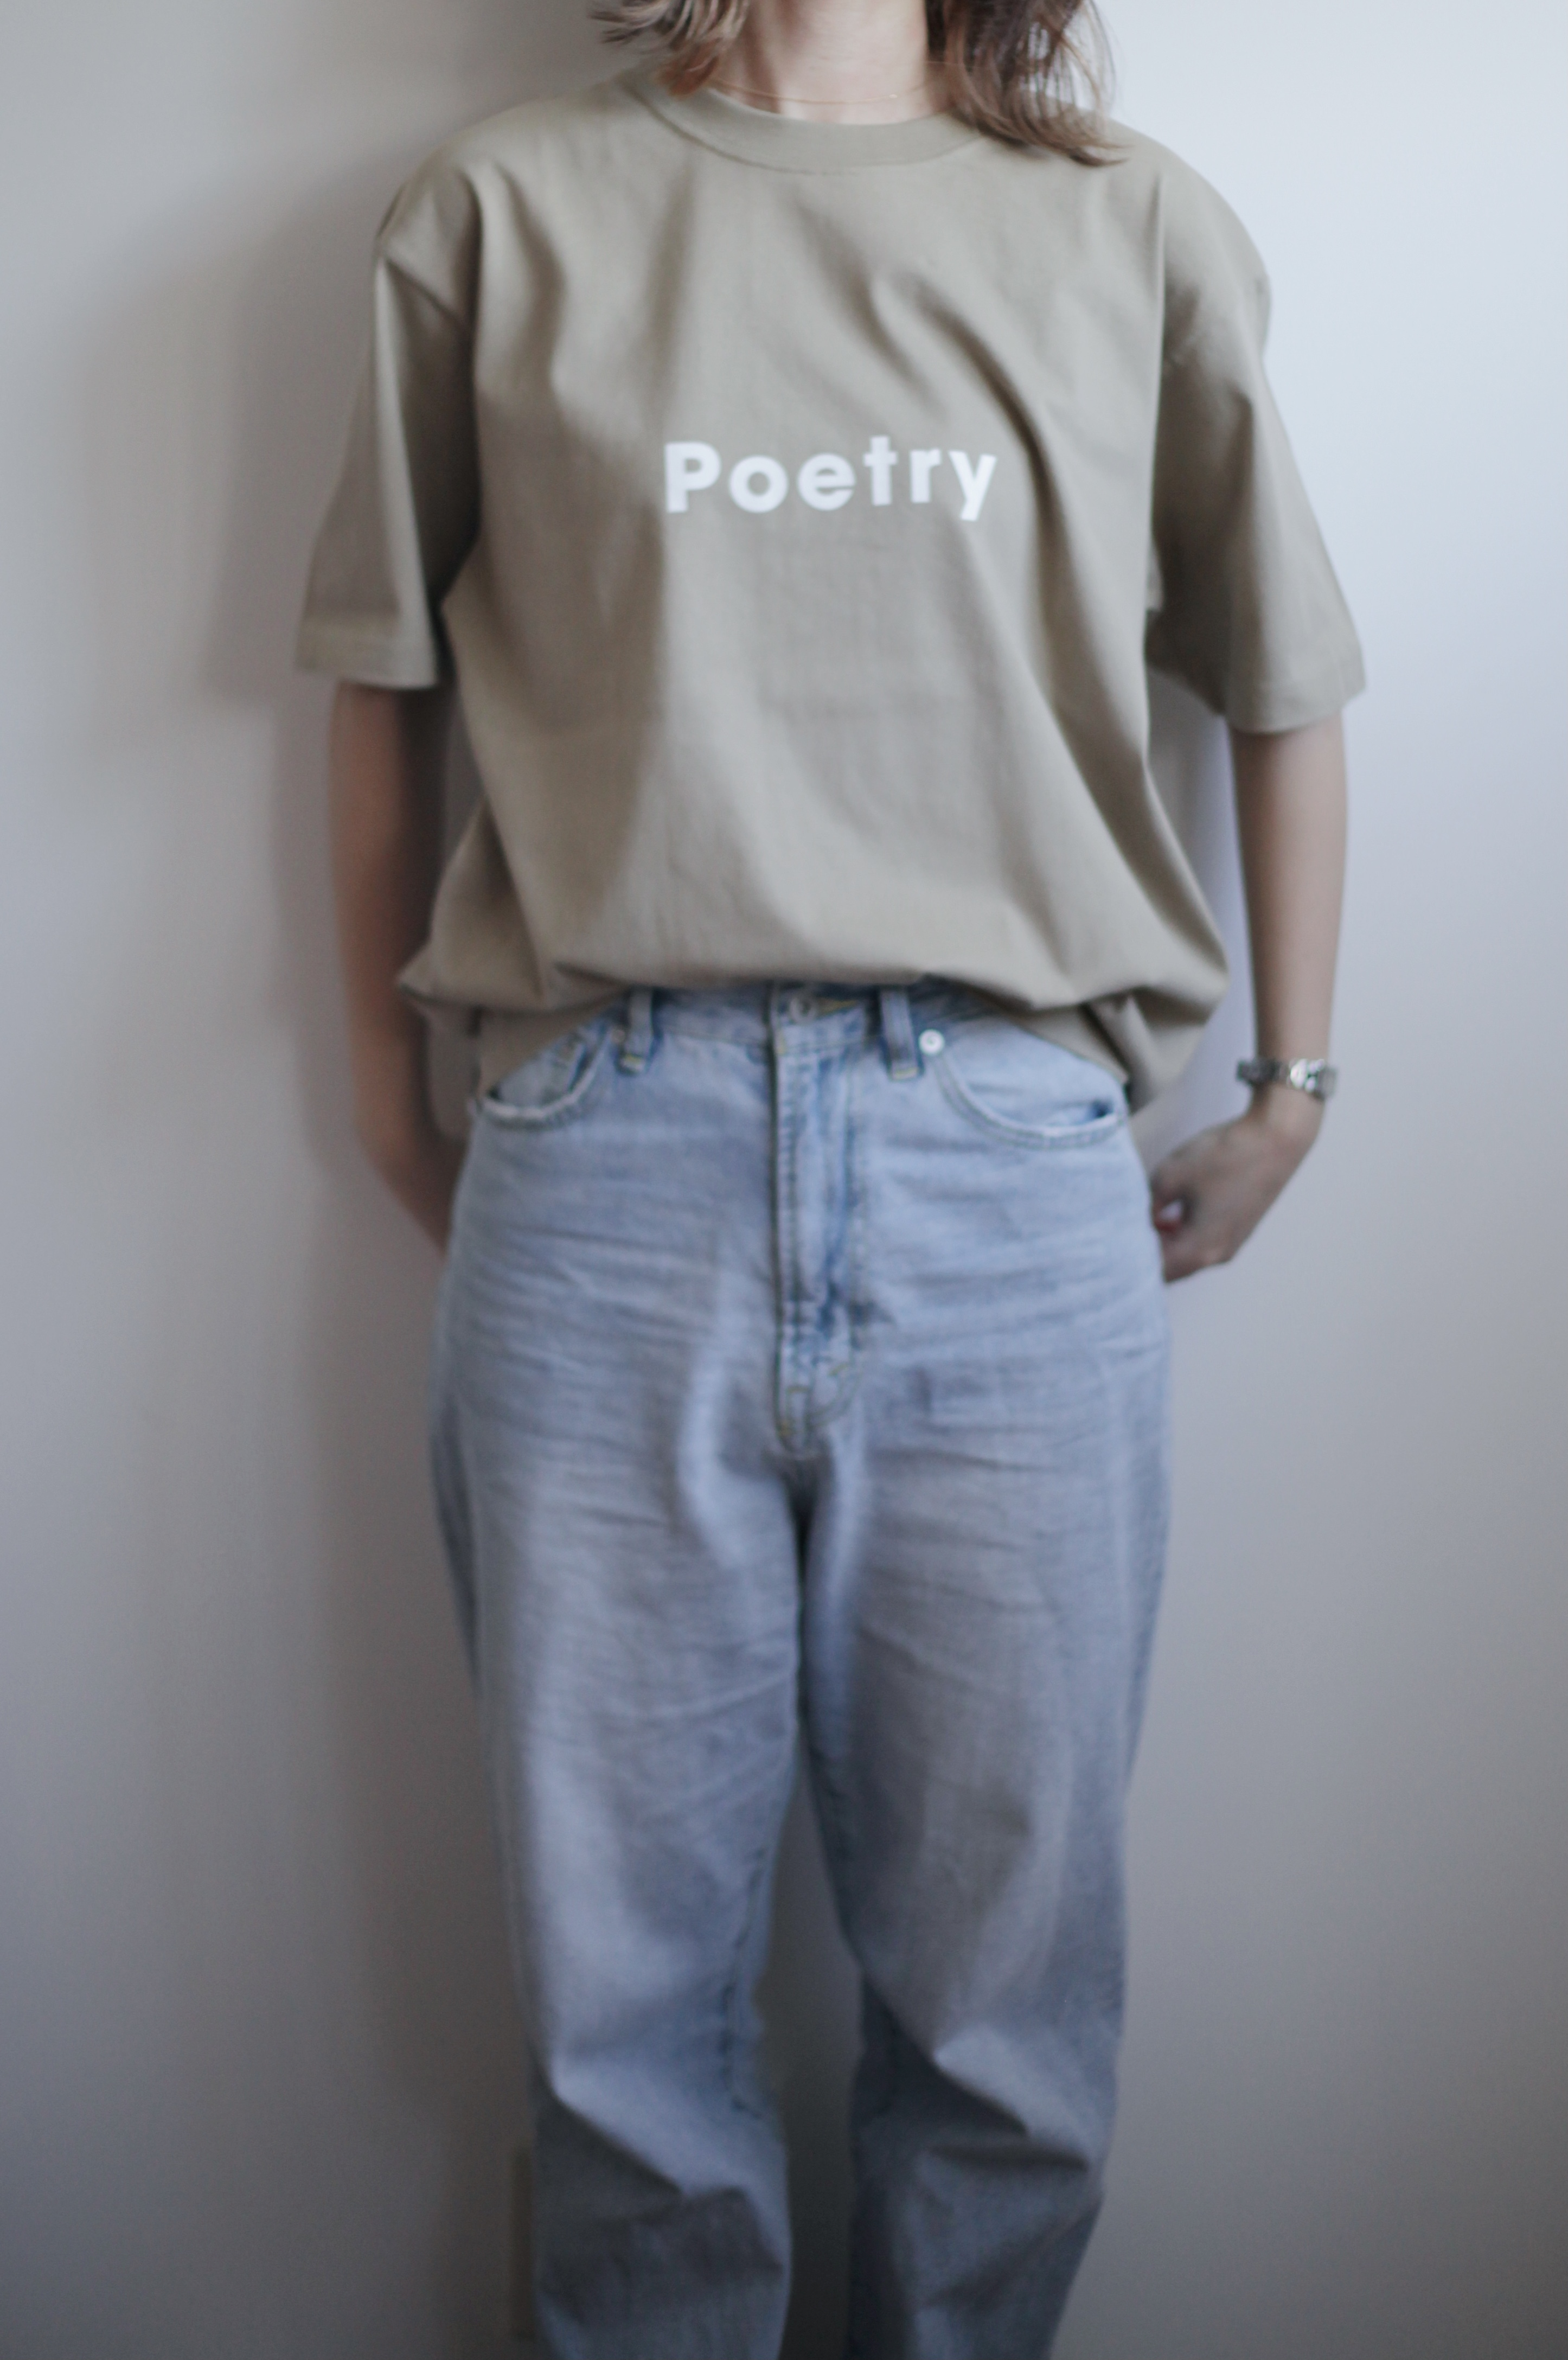 【POET MEETS DUBWISE(ポエトミーツダブワイズ)】Poetry T-Shirt